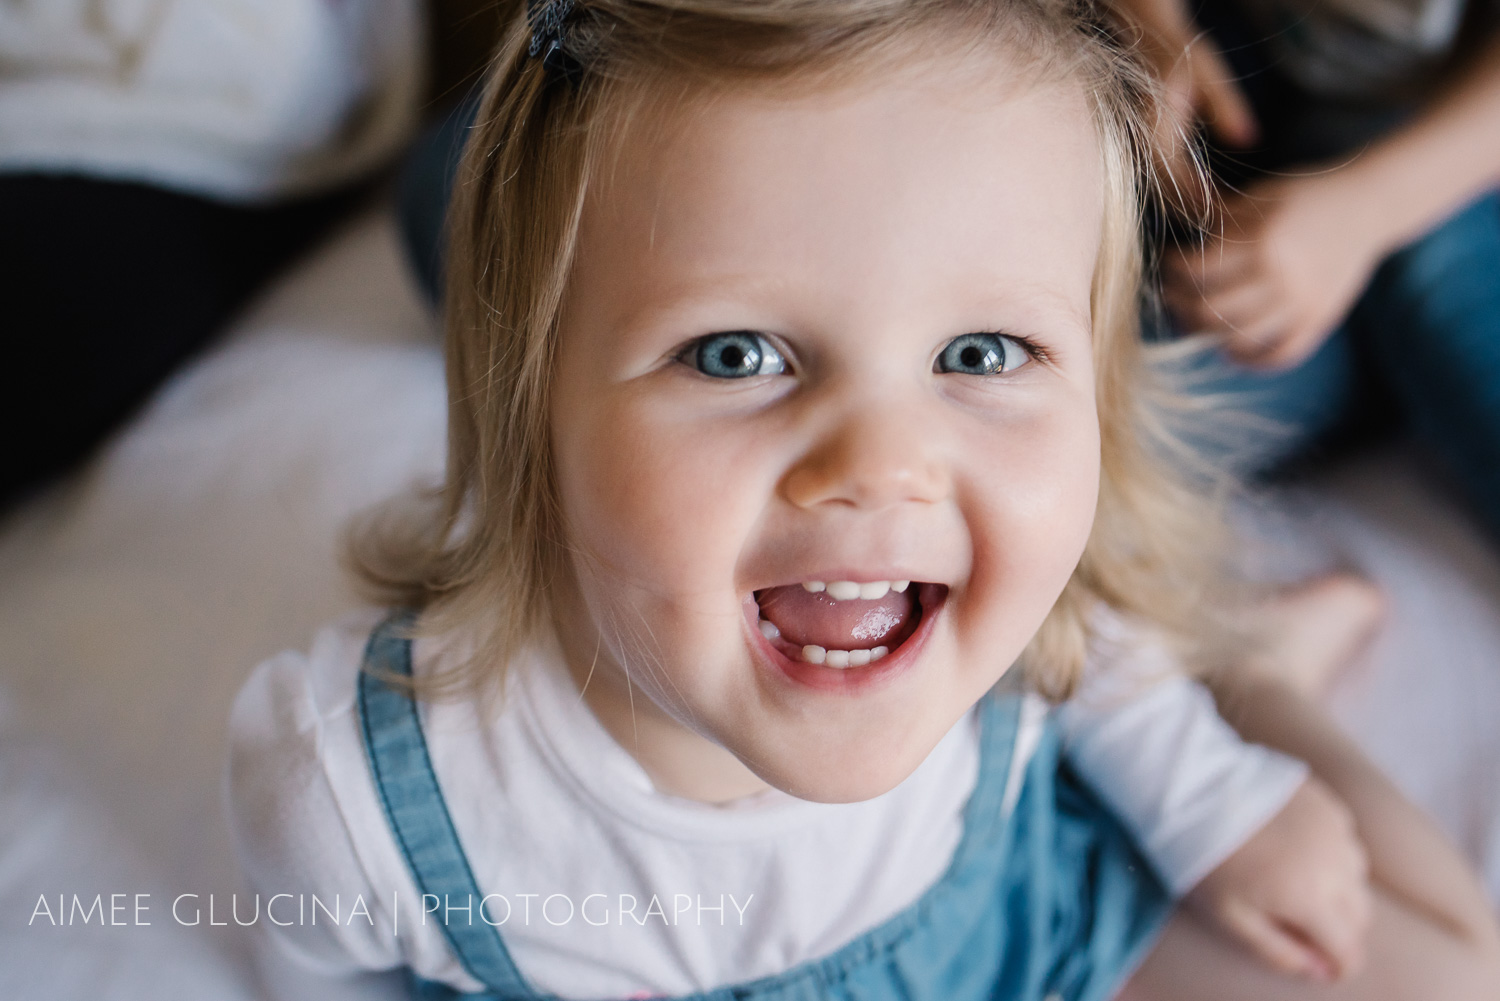 O'Keefe Lifestyle Newborn Session by Aimee Glucina Photography-10.jpg